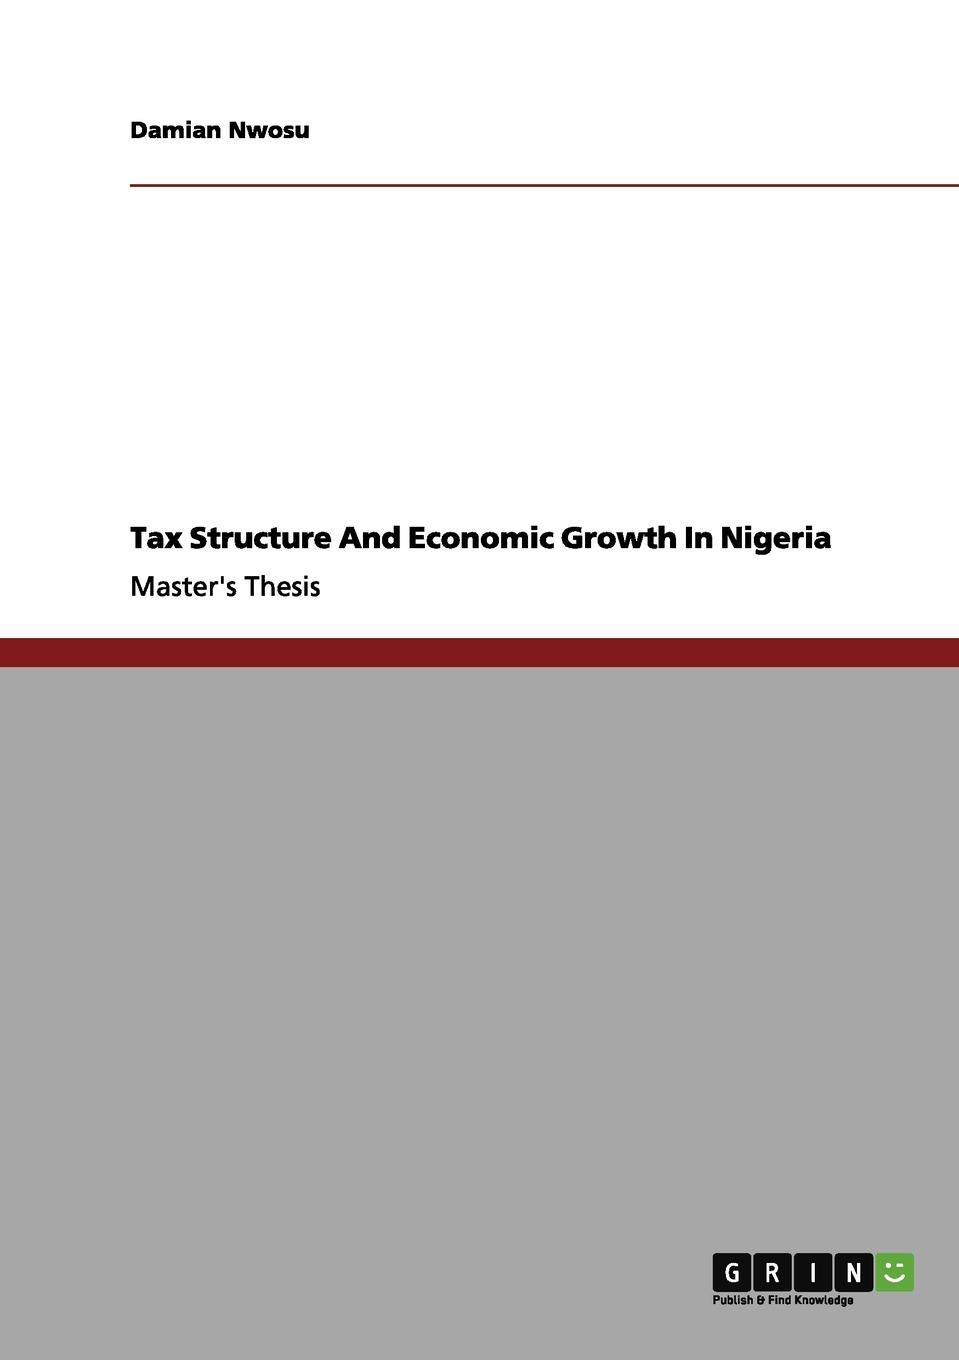 Damian Nwosu Tax Structure And Economic Growth In Nigeria t omay energy consumption and economic growth evidence from nonlinear panel cointegration and causality tests